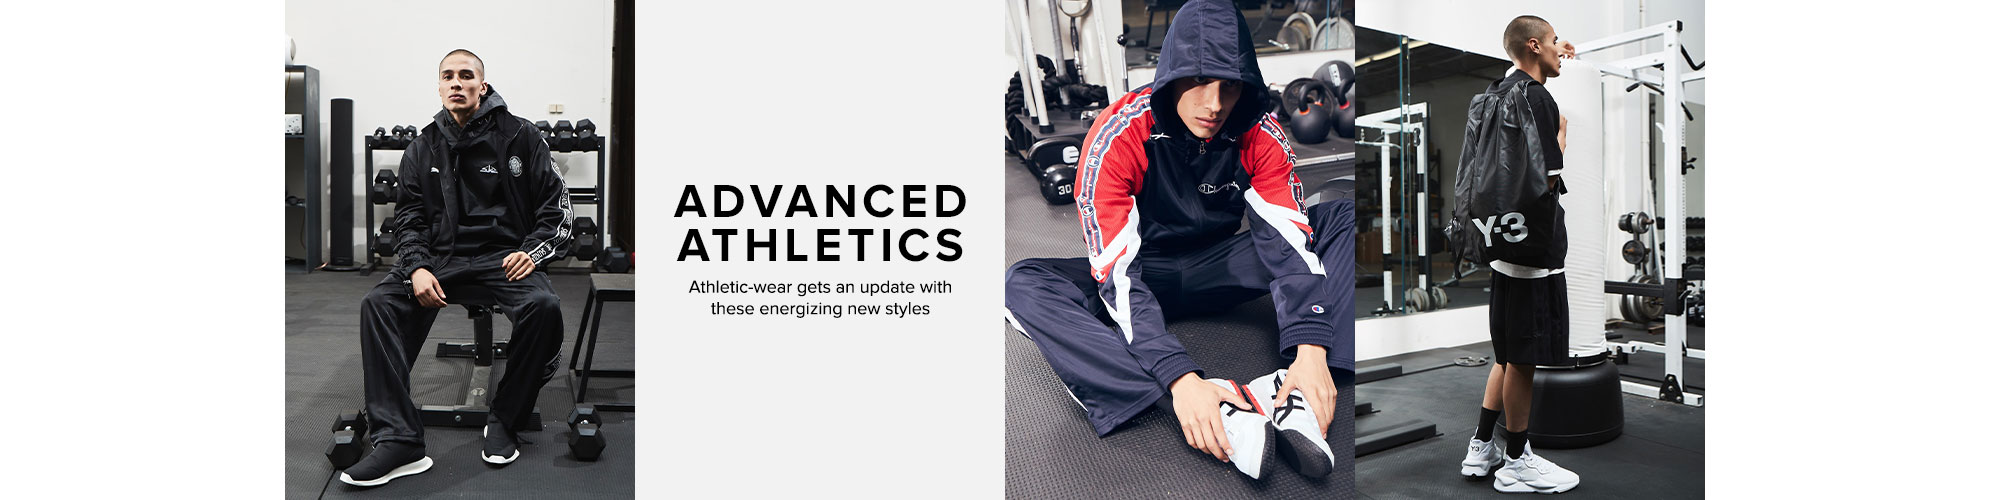 Advanced Athletics. Athletic-wear gets an update with these energizing new styles. Shop Athletics.